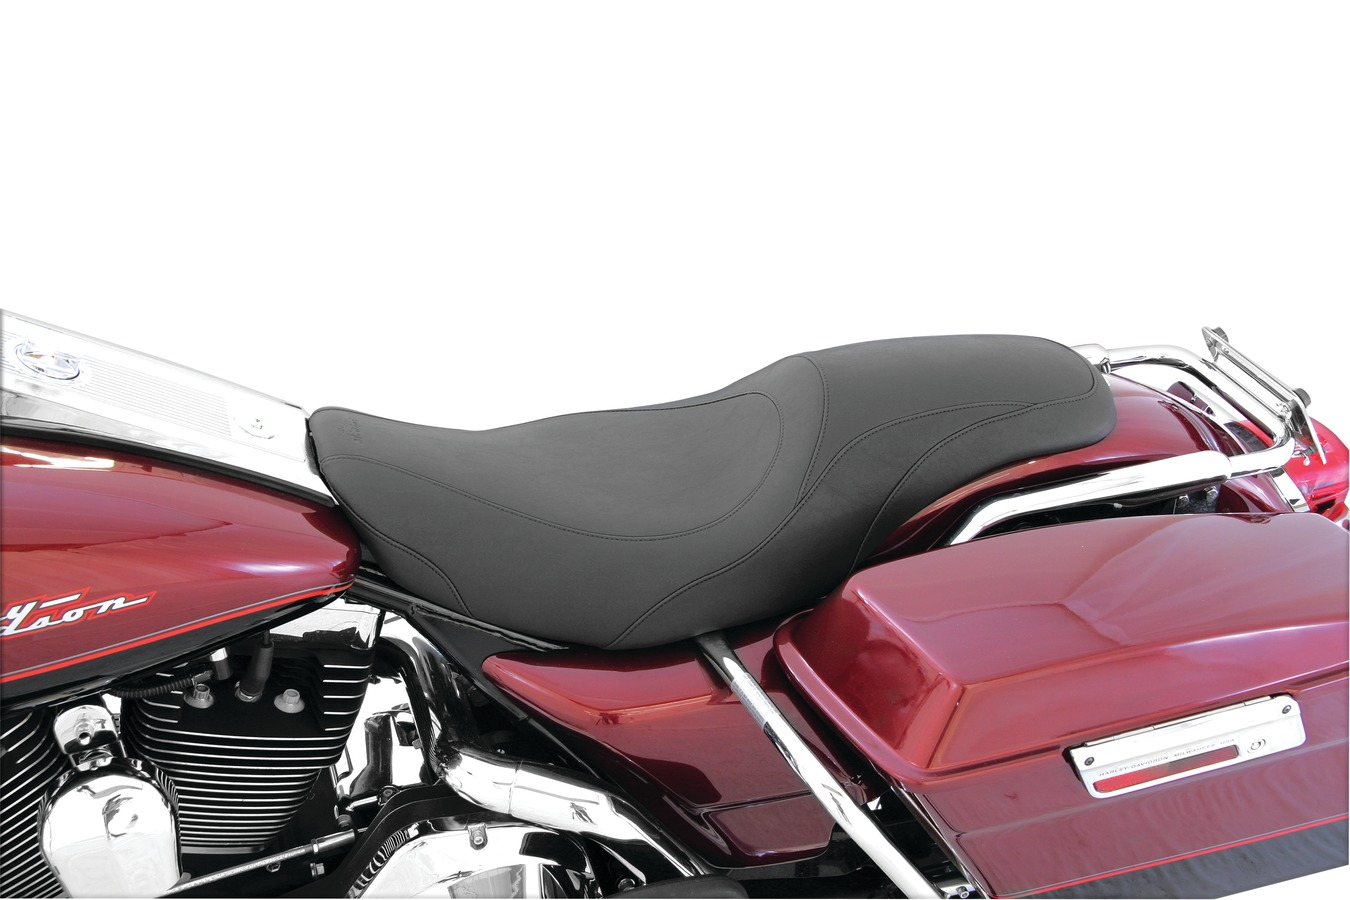 Tripper Fastback™ One-Piece Seat for Harley-Davidson Road King 1997-